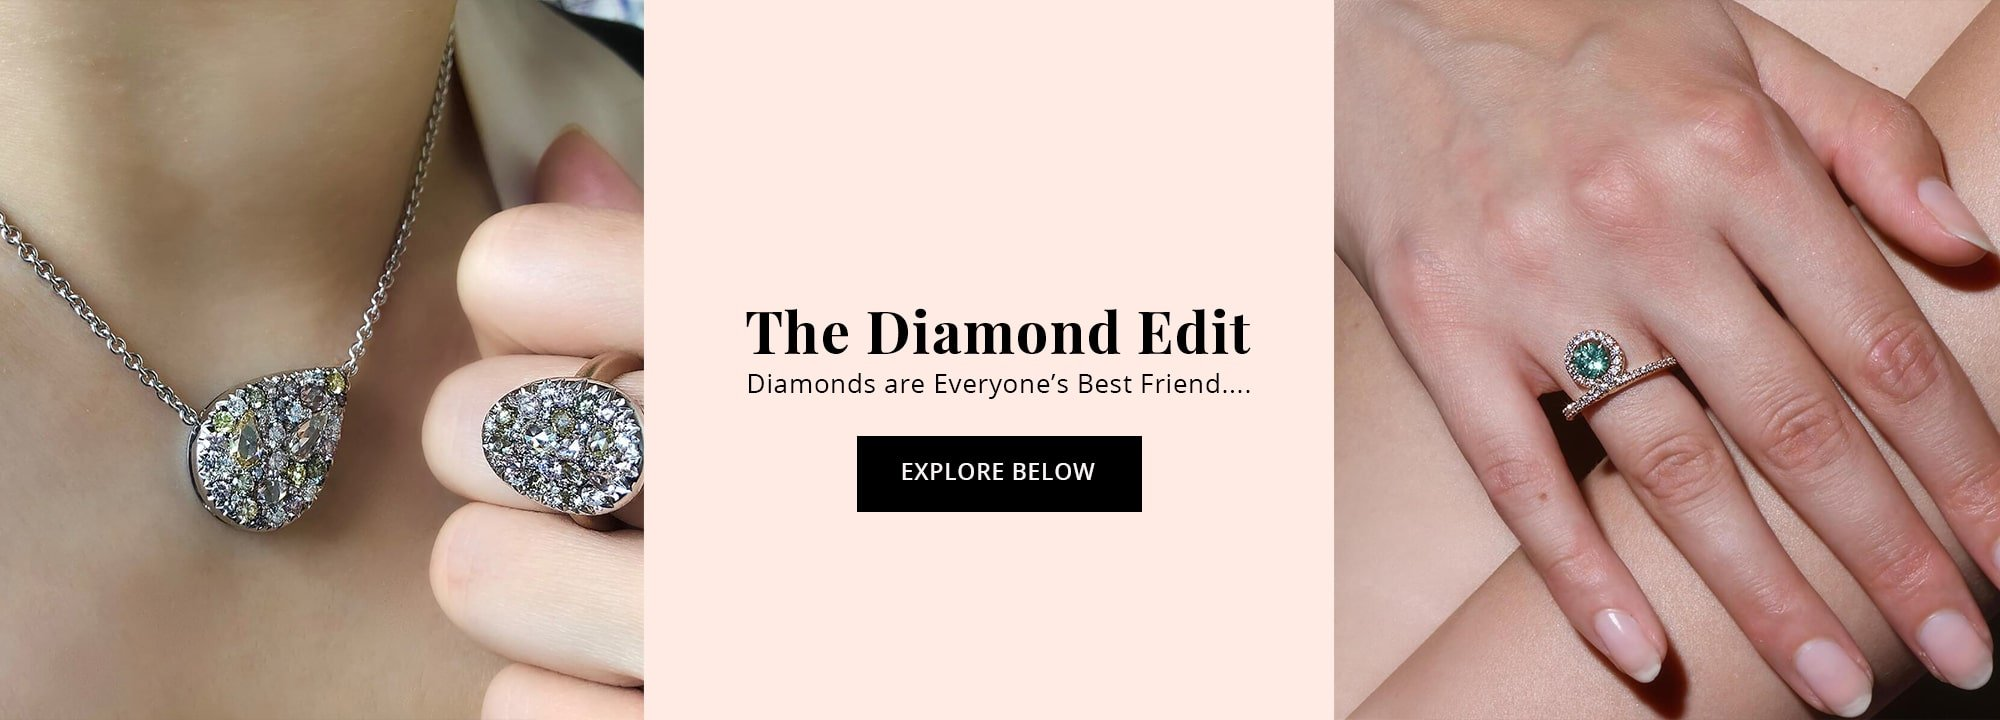 The Diamond Edit